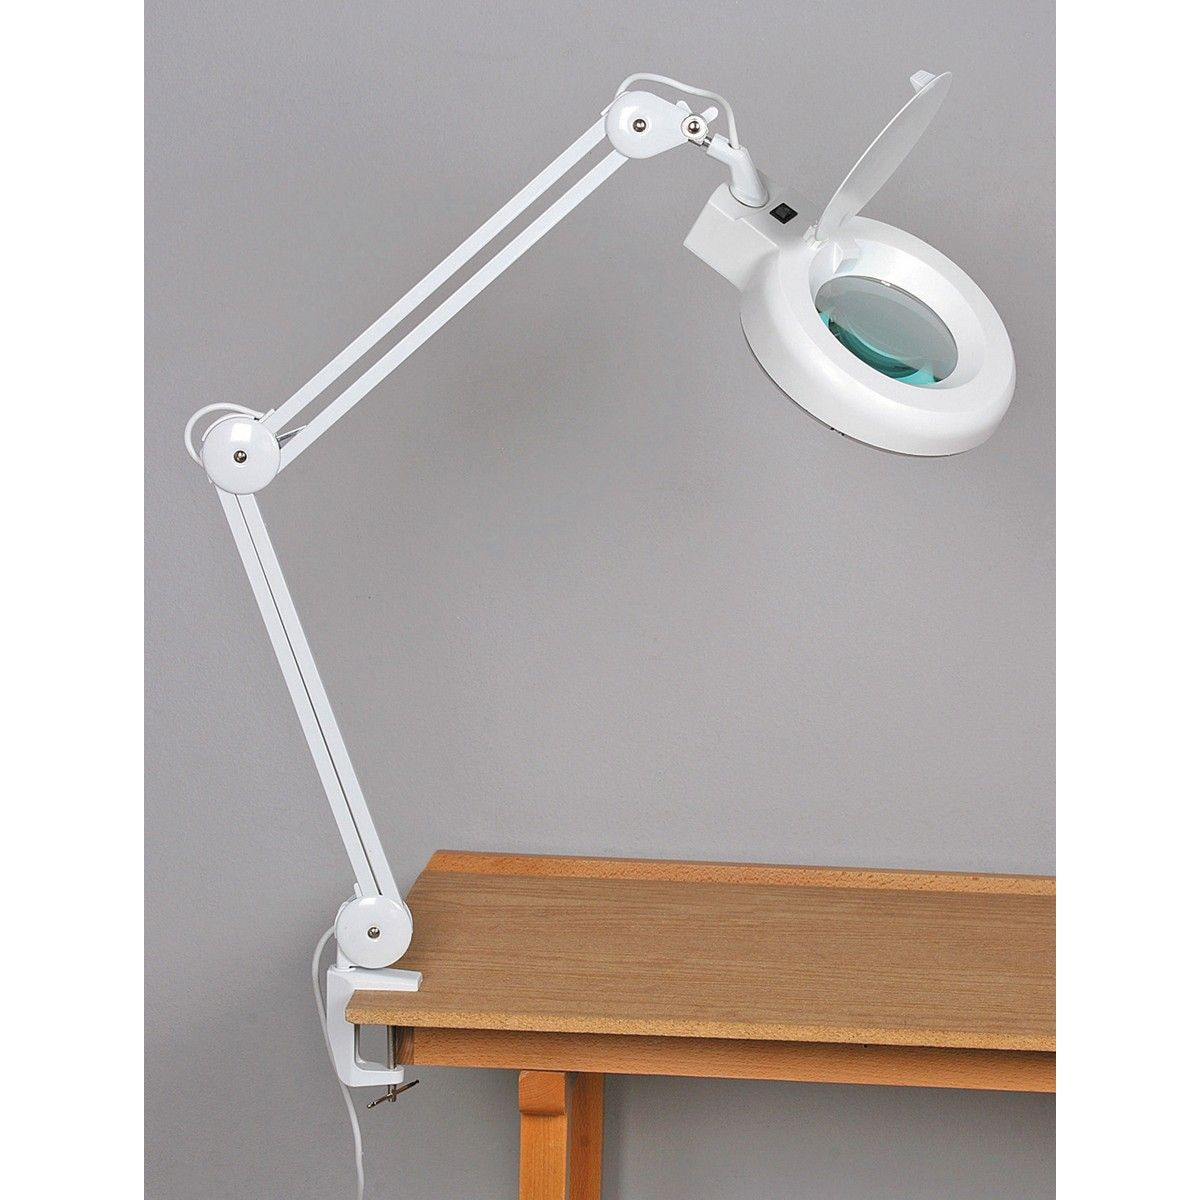 Fluorescent Magnifying Lamp – Desk Magnifying Lamp